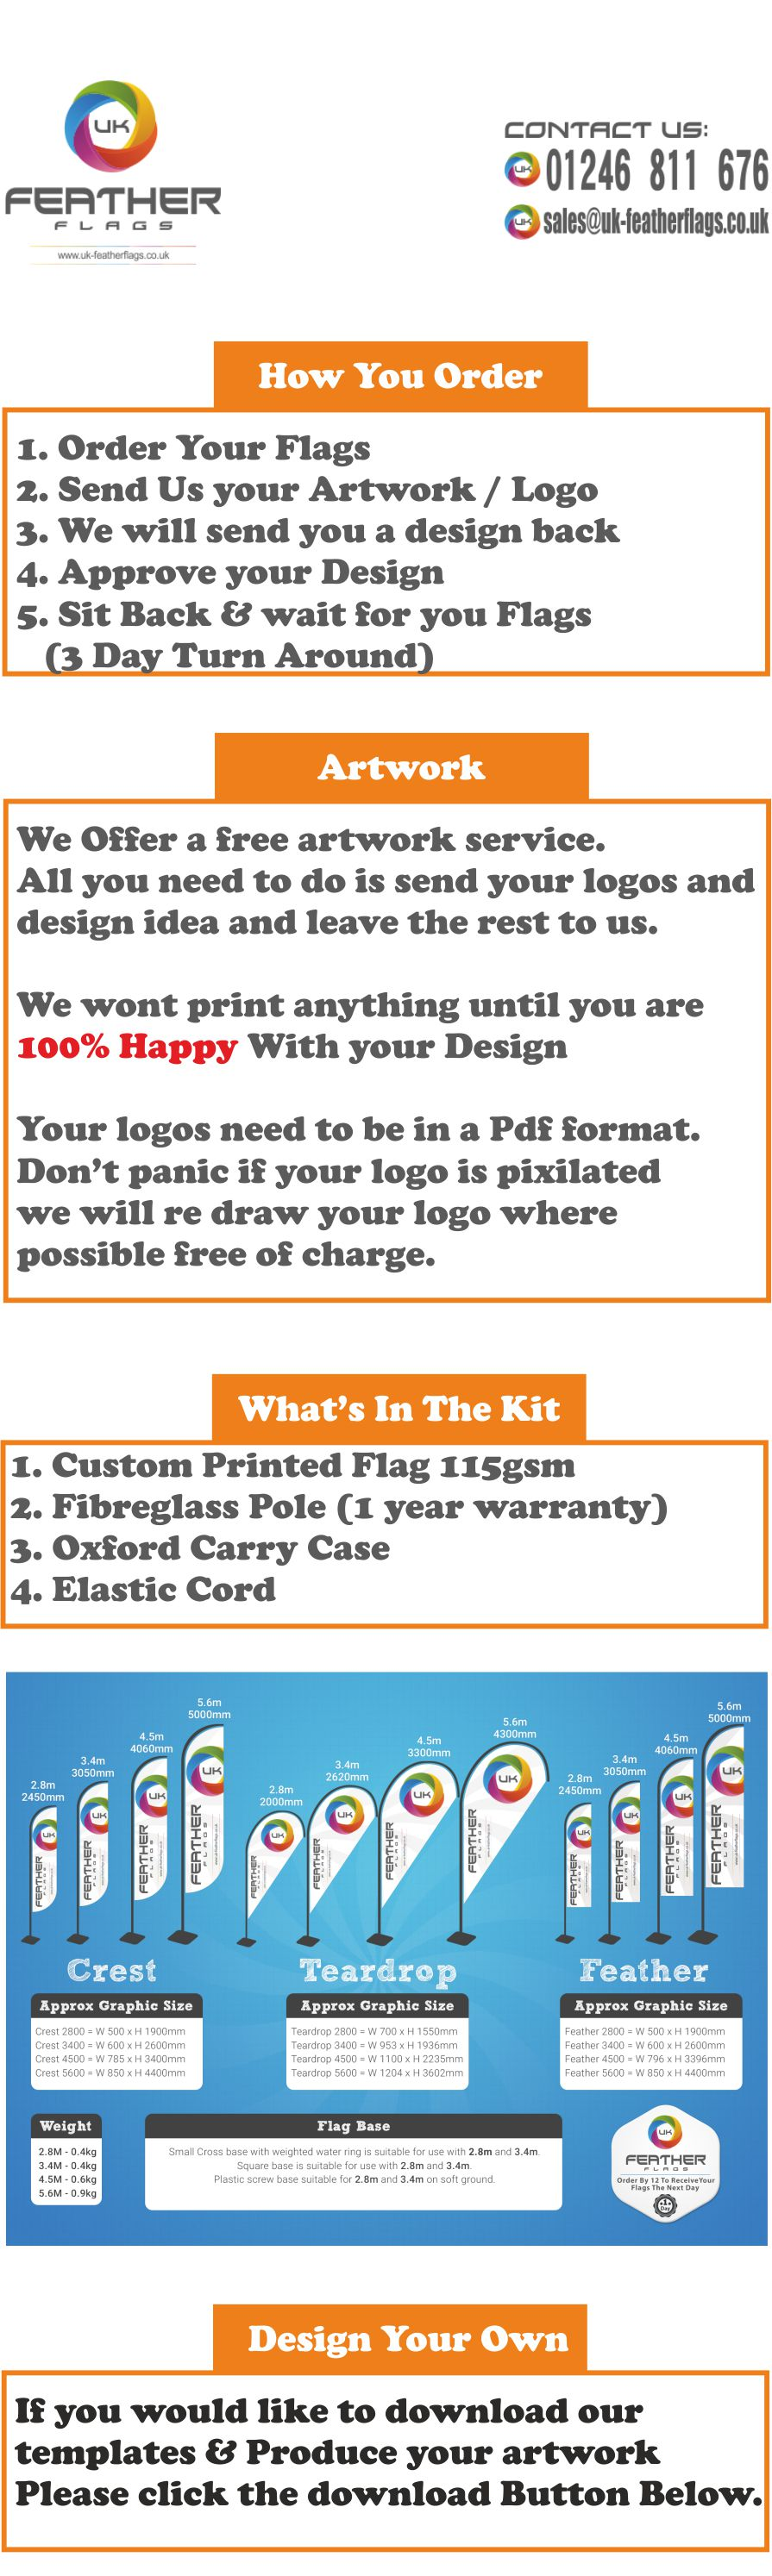 How To Order Your Feather Flags